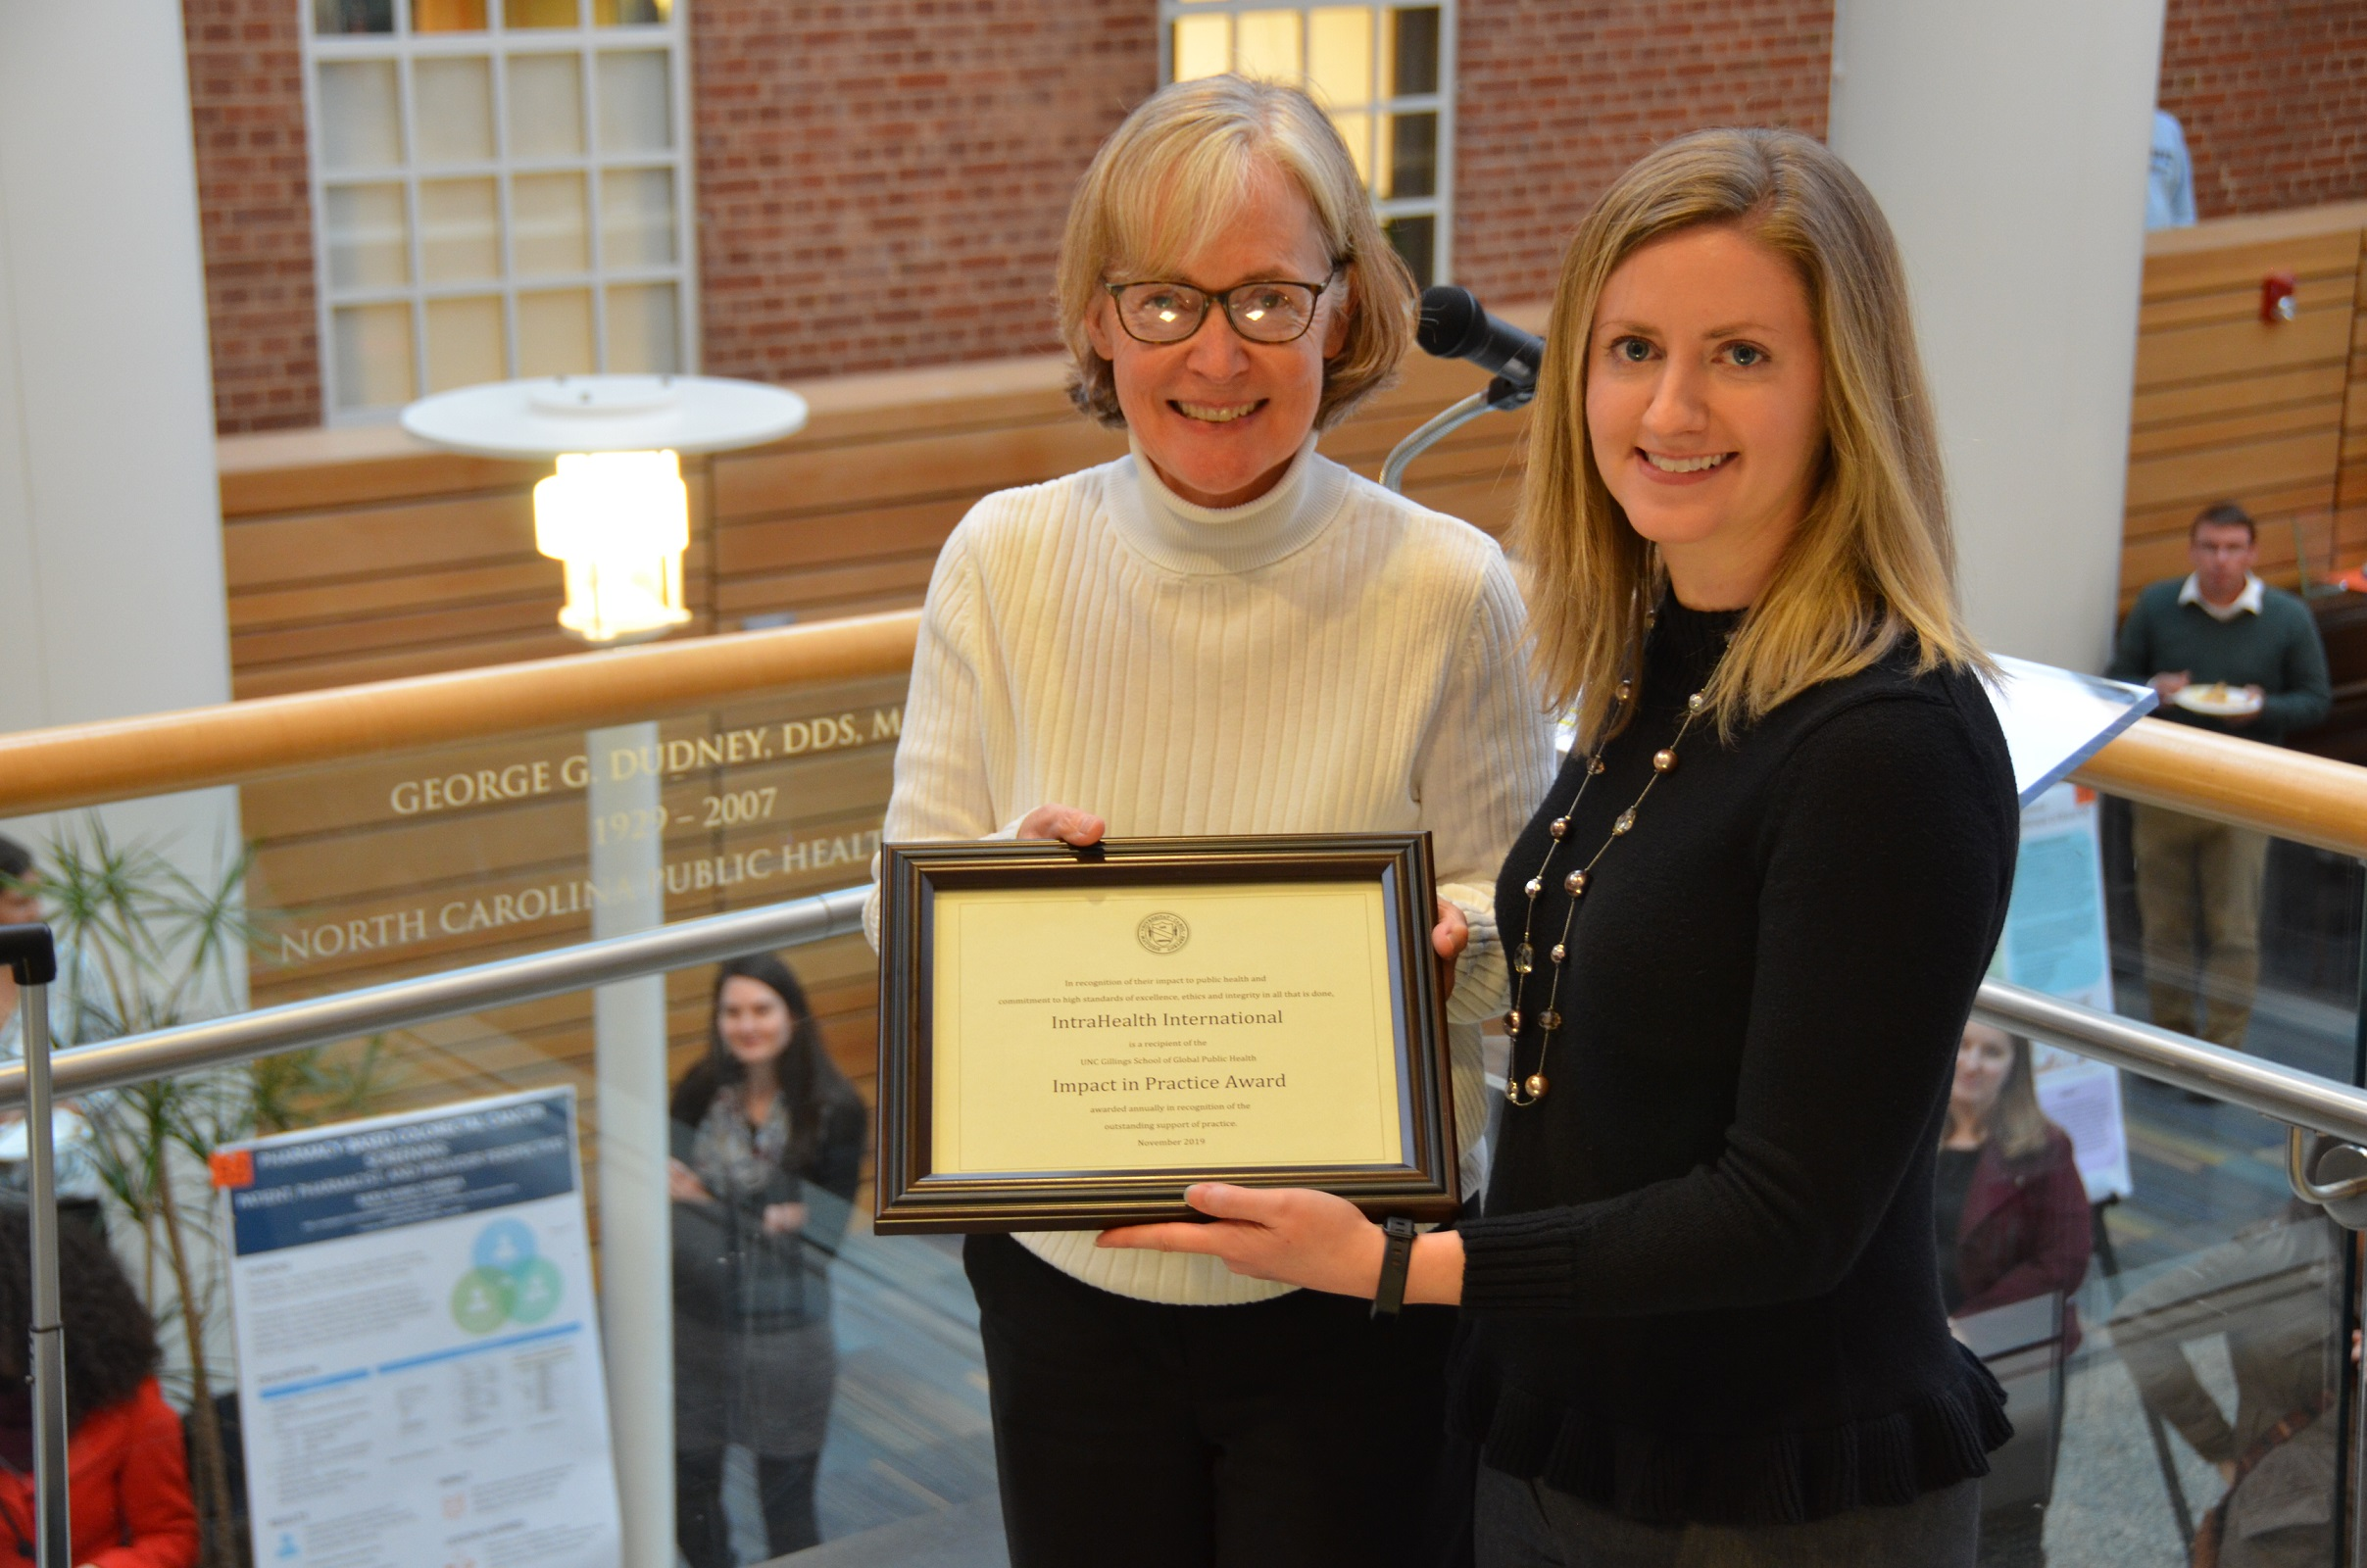 Strategy and development officer Emily Kiser, a Gillings School alum, accepts the award on IntraHealth's behalf at a ceremony on November 15. Photo courtesy of the Gillings School.